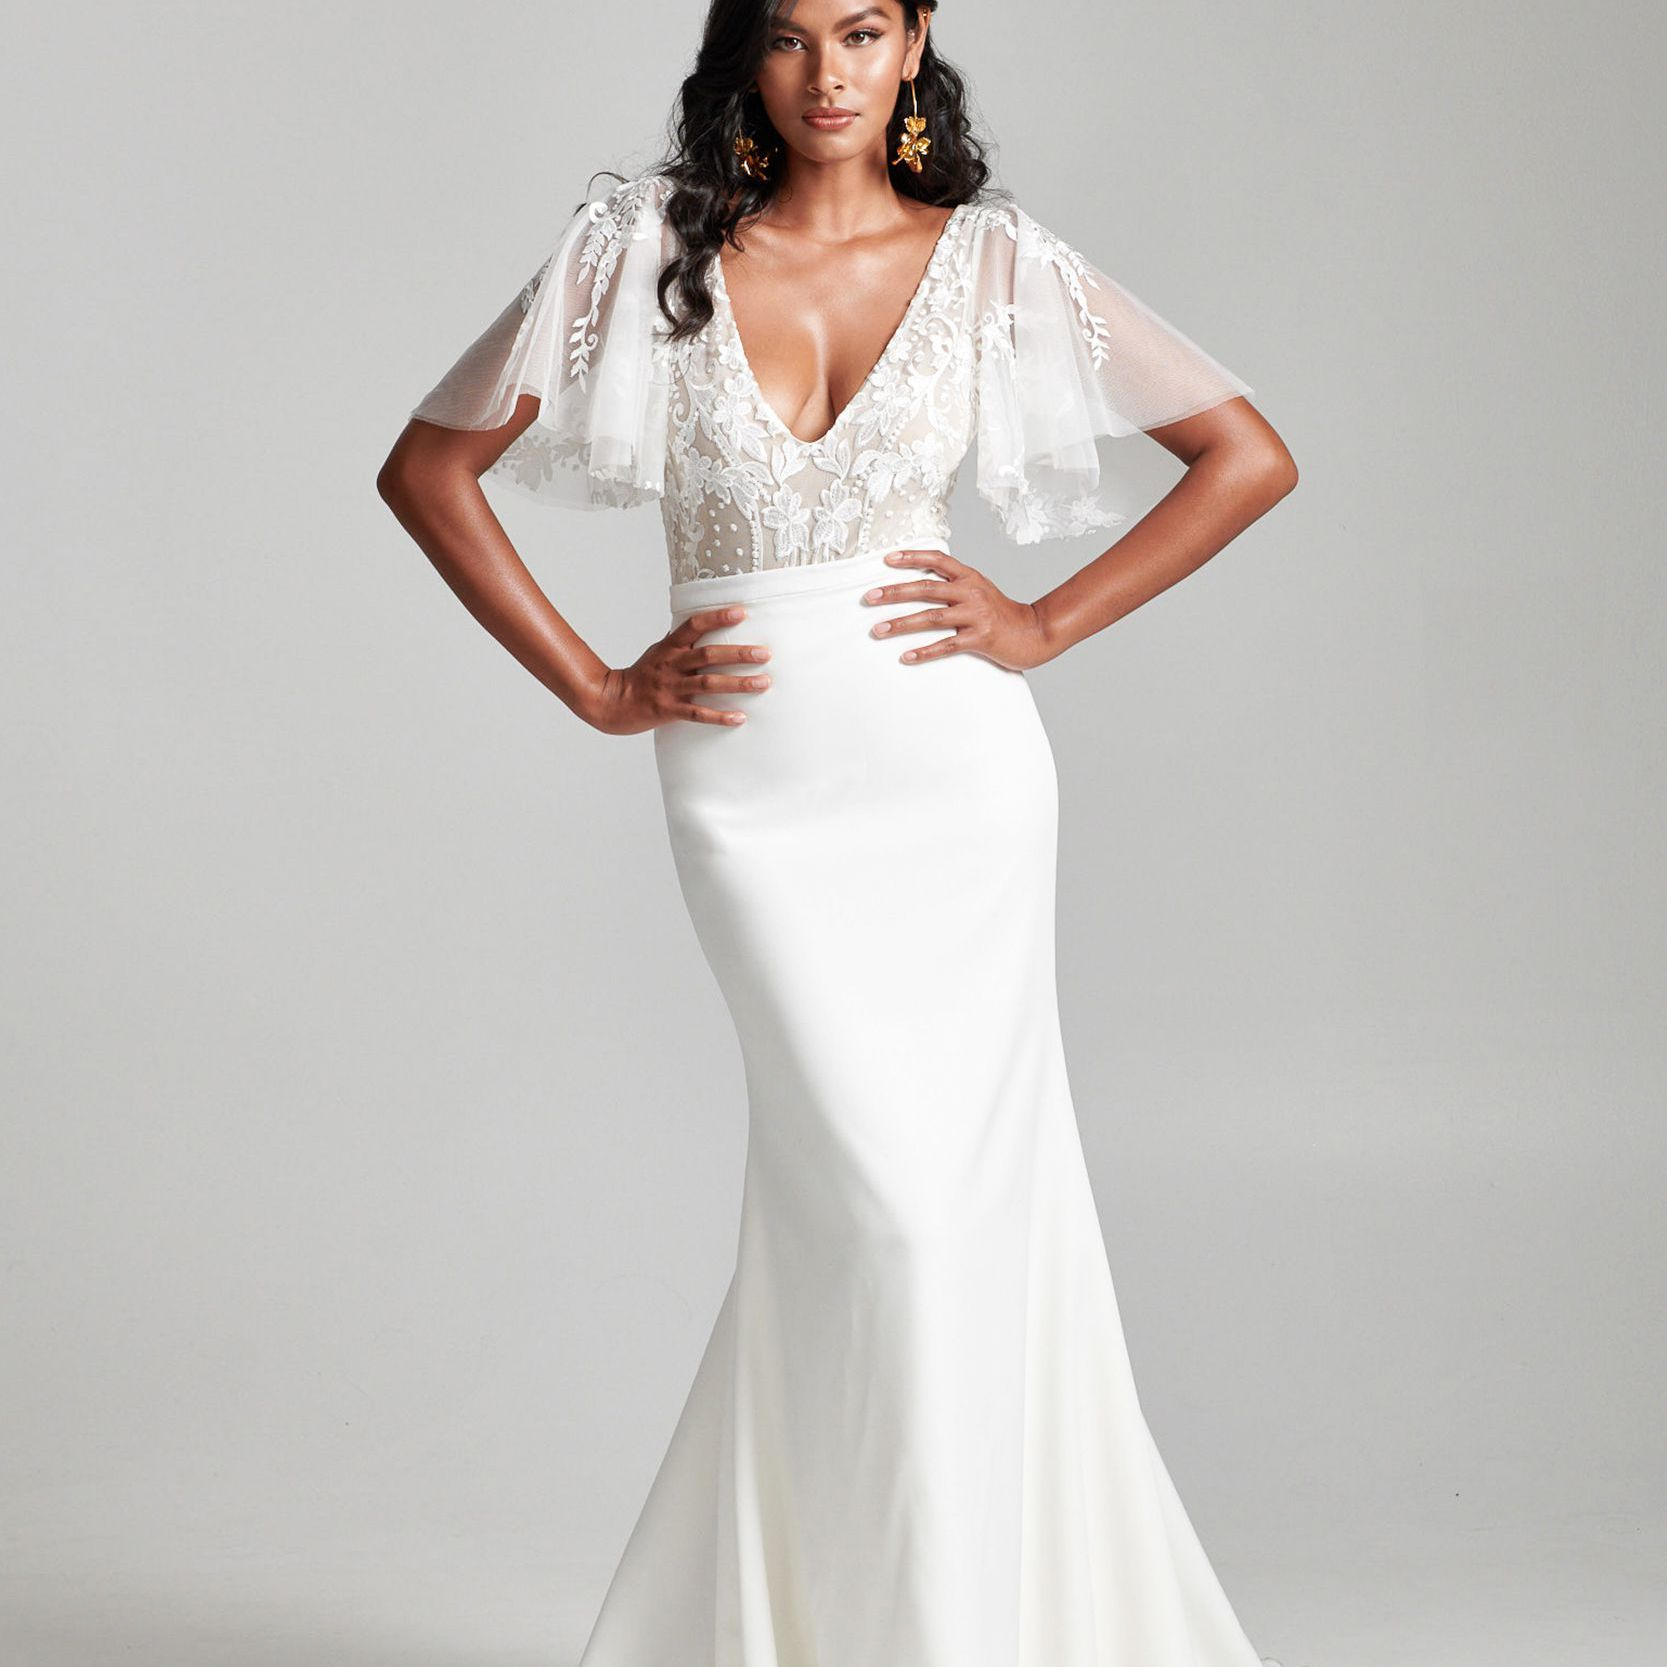 Model in lace top with flutter sleeves and long skirt